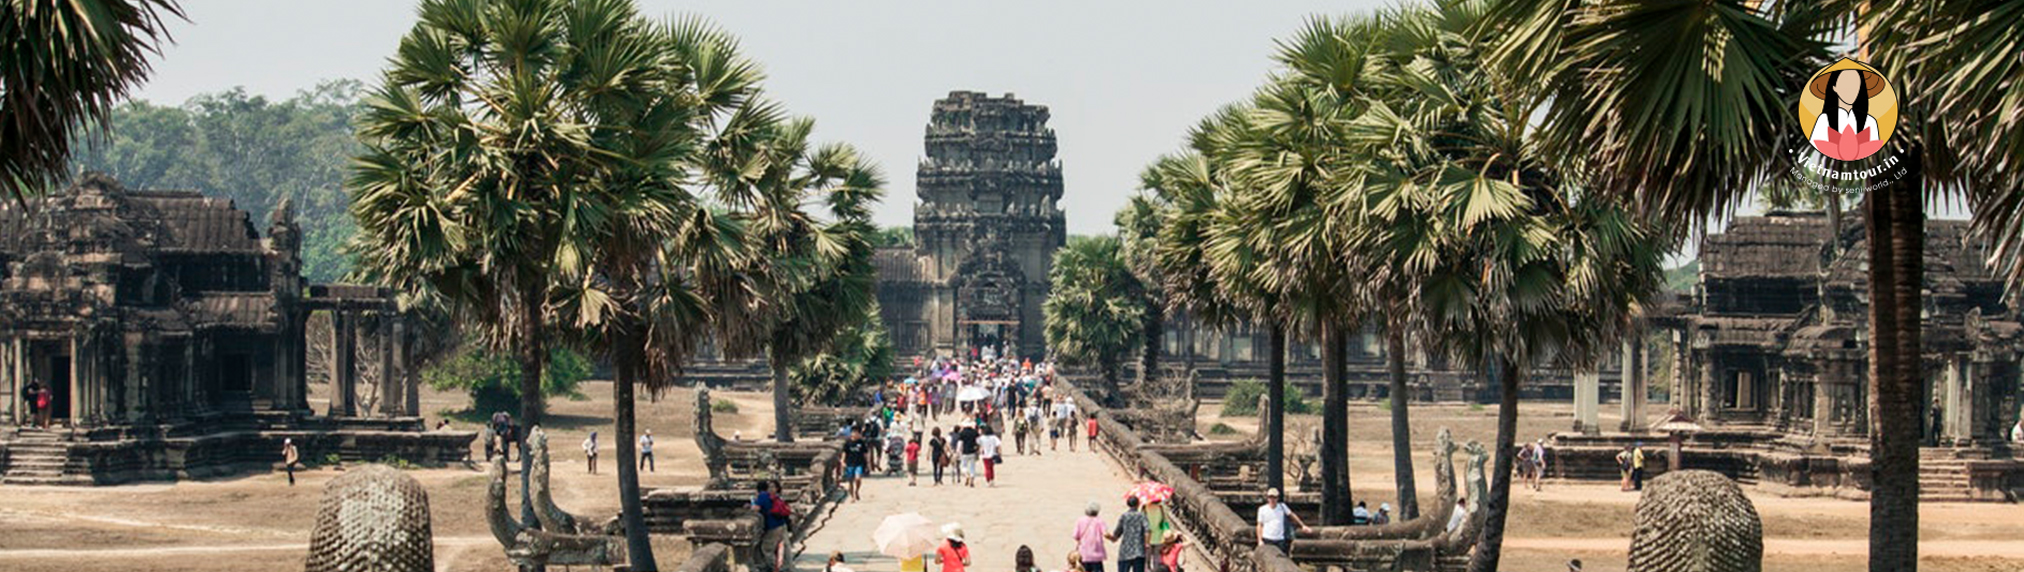 cambodia tour packages from ahmedabad